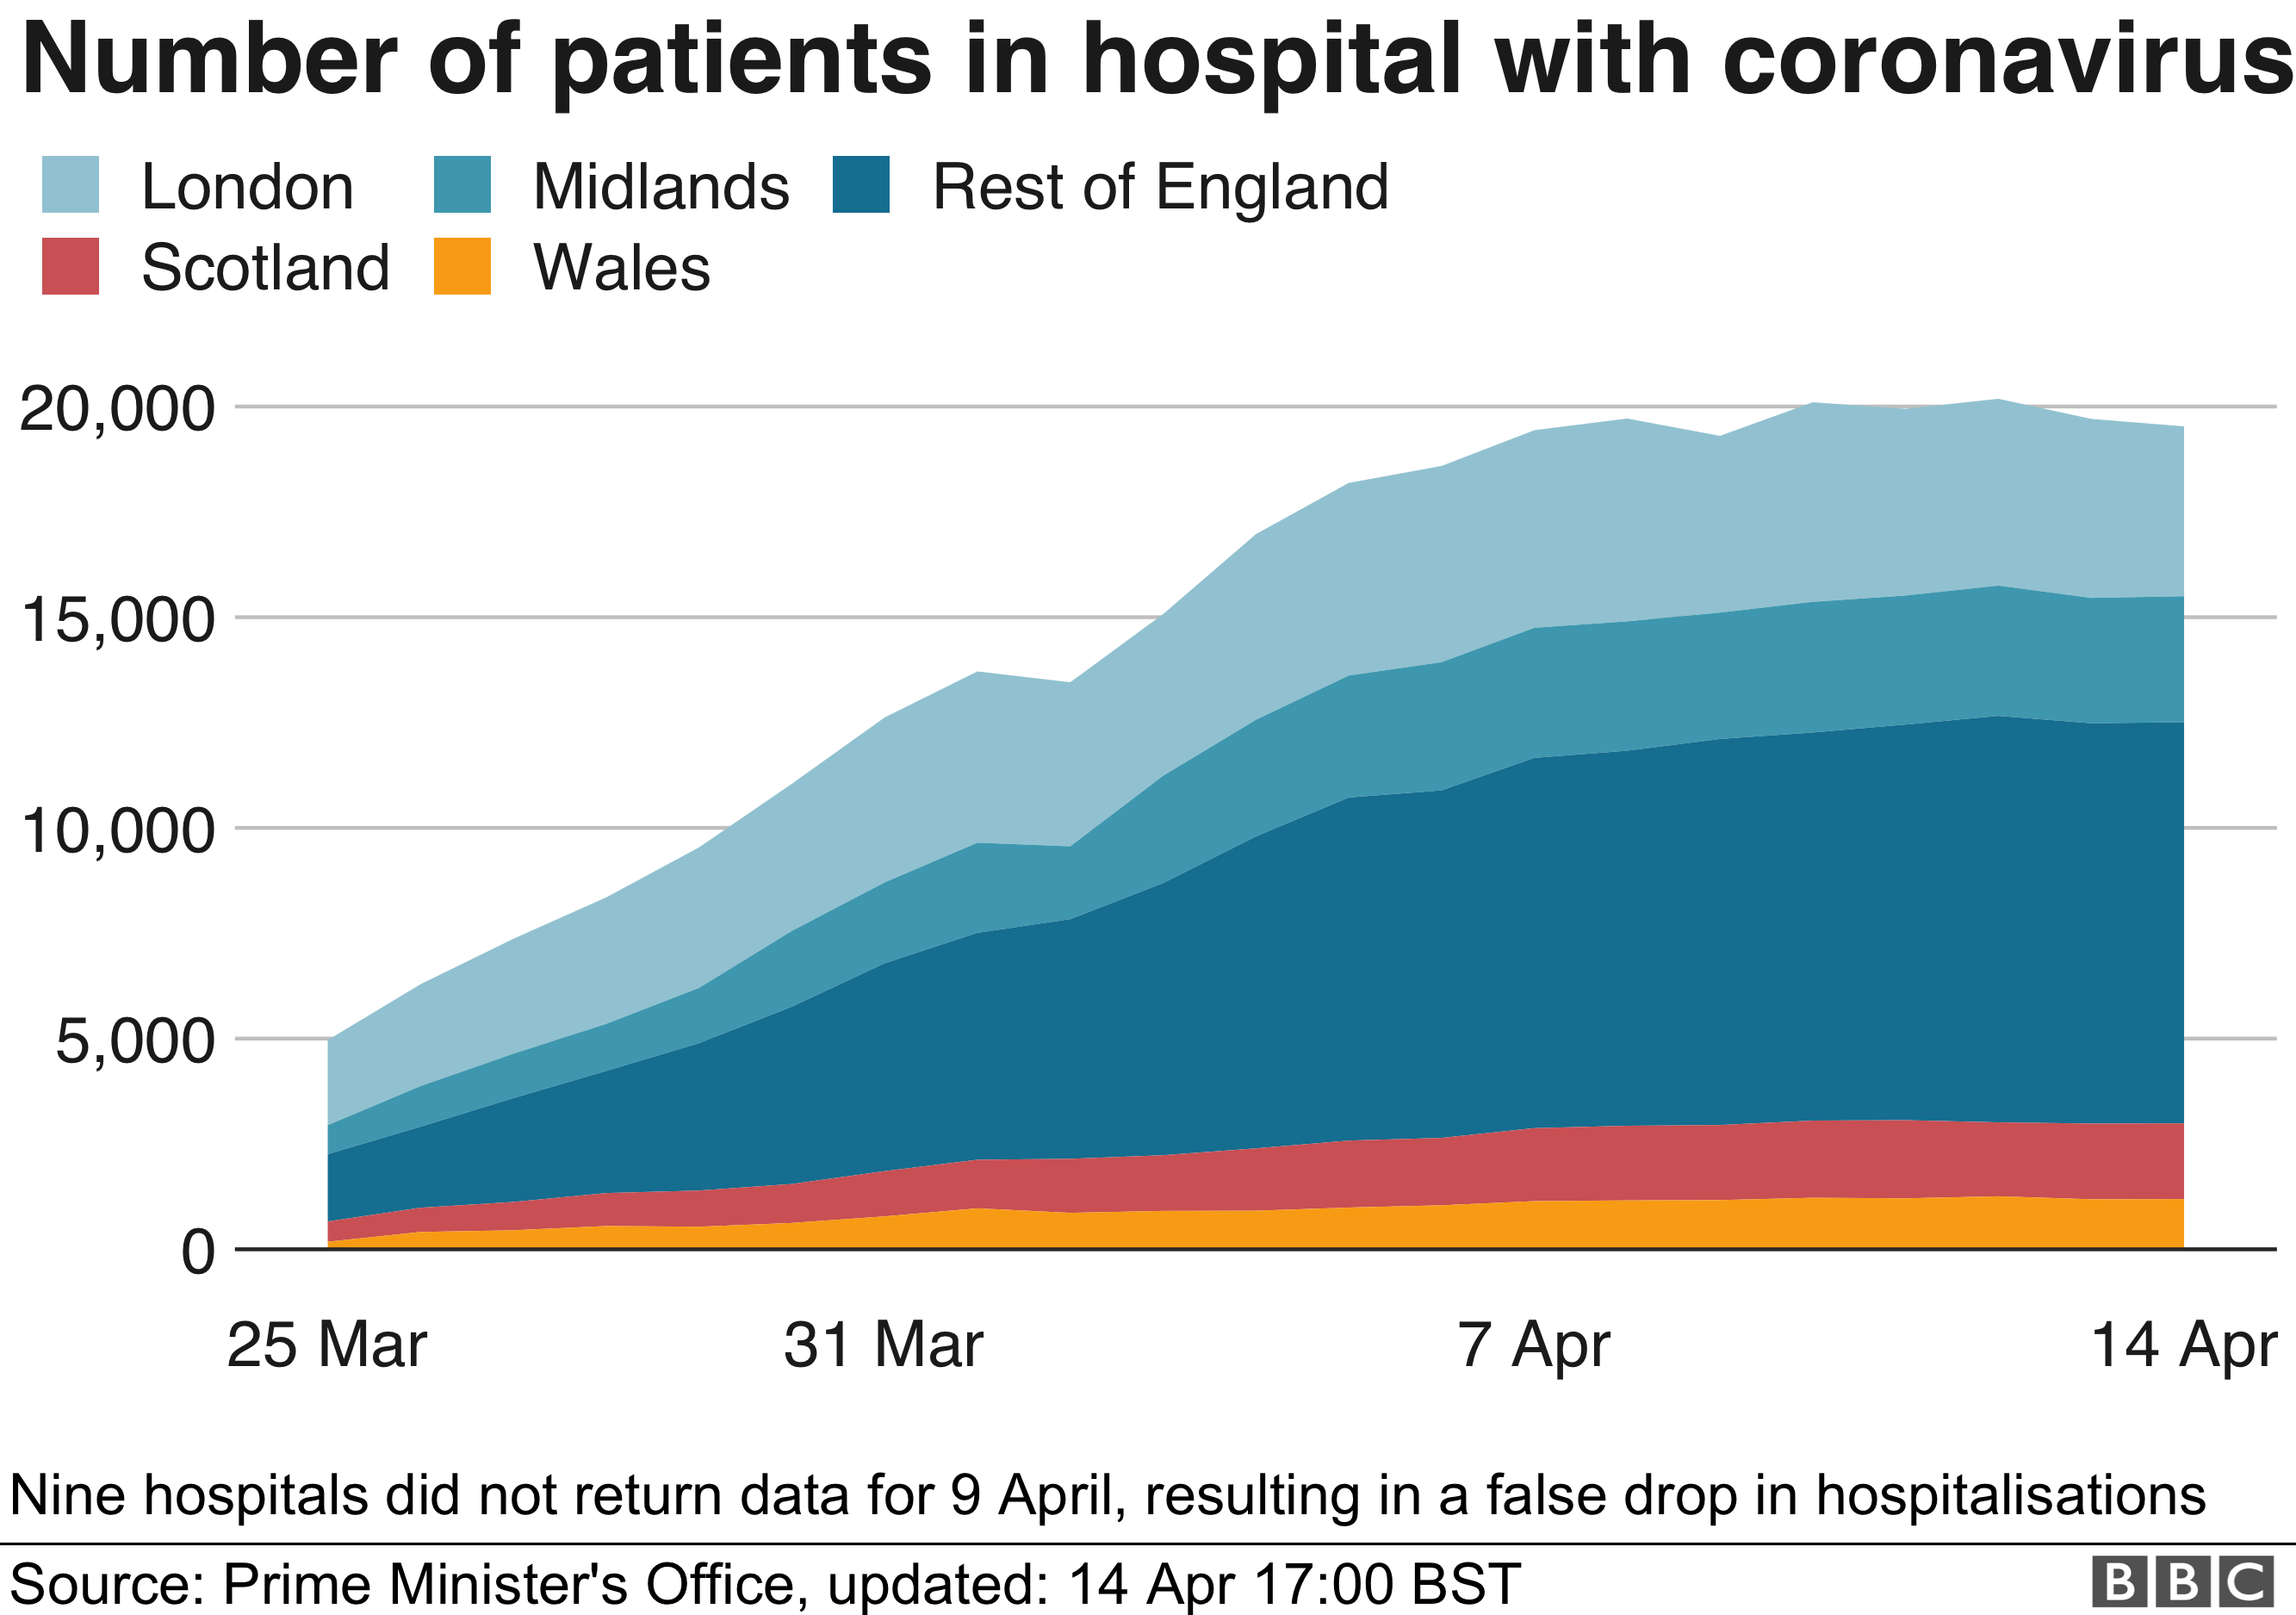 Number of patients in hospital with coronavirus